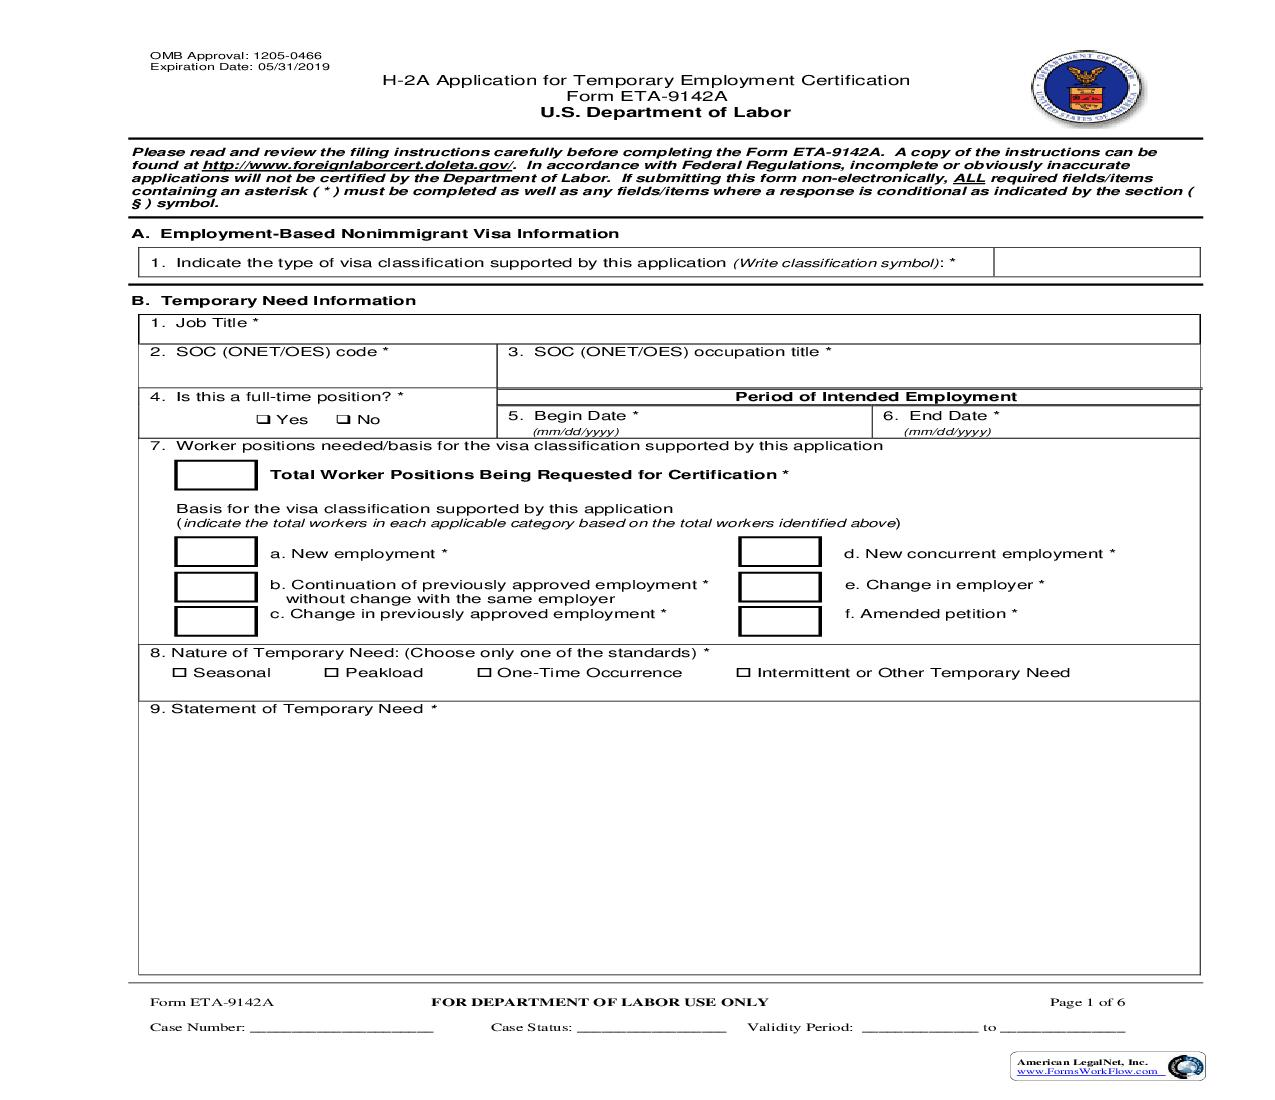 H-2A Application For Temporary Employment Certification {ETA-9142A} | Pdf Fpdf Doc Docx | Official Federal Forms